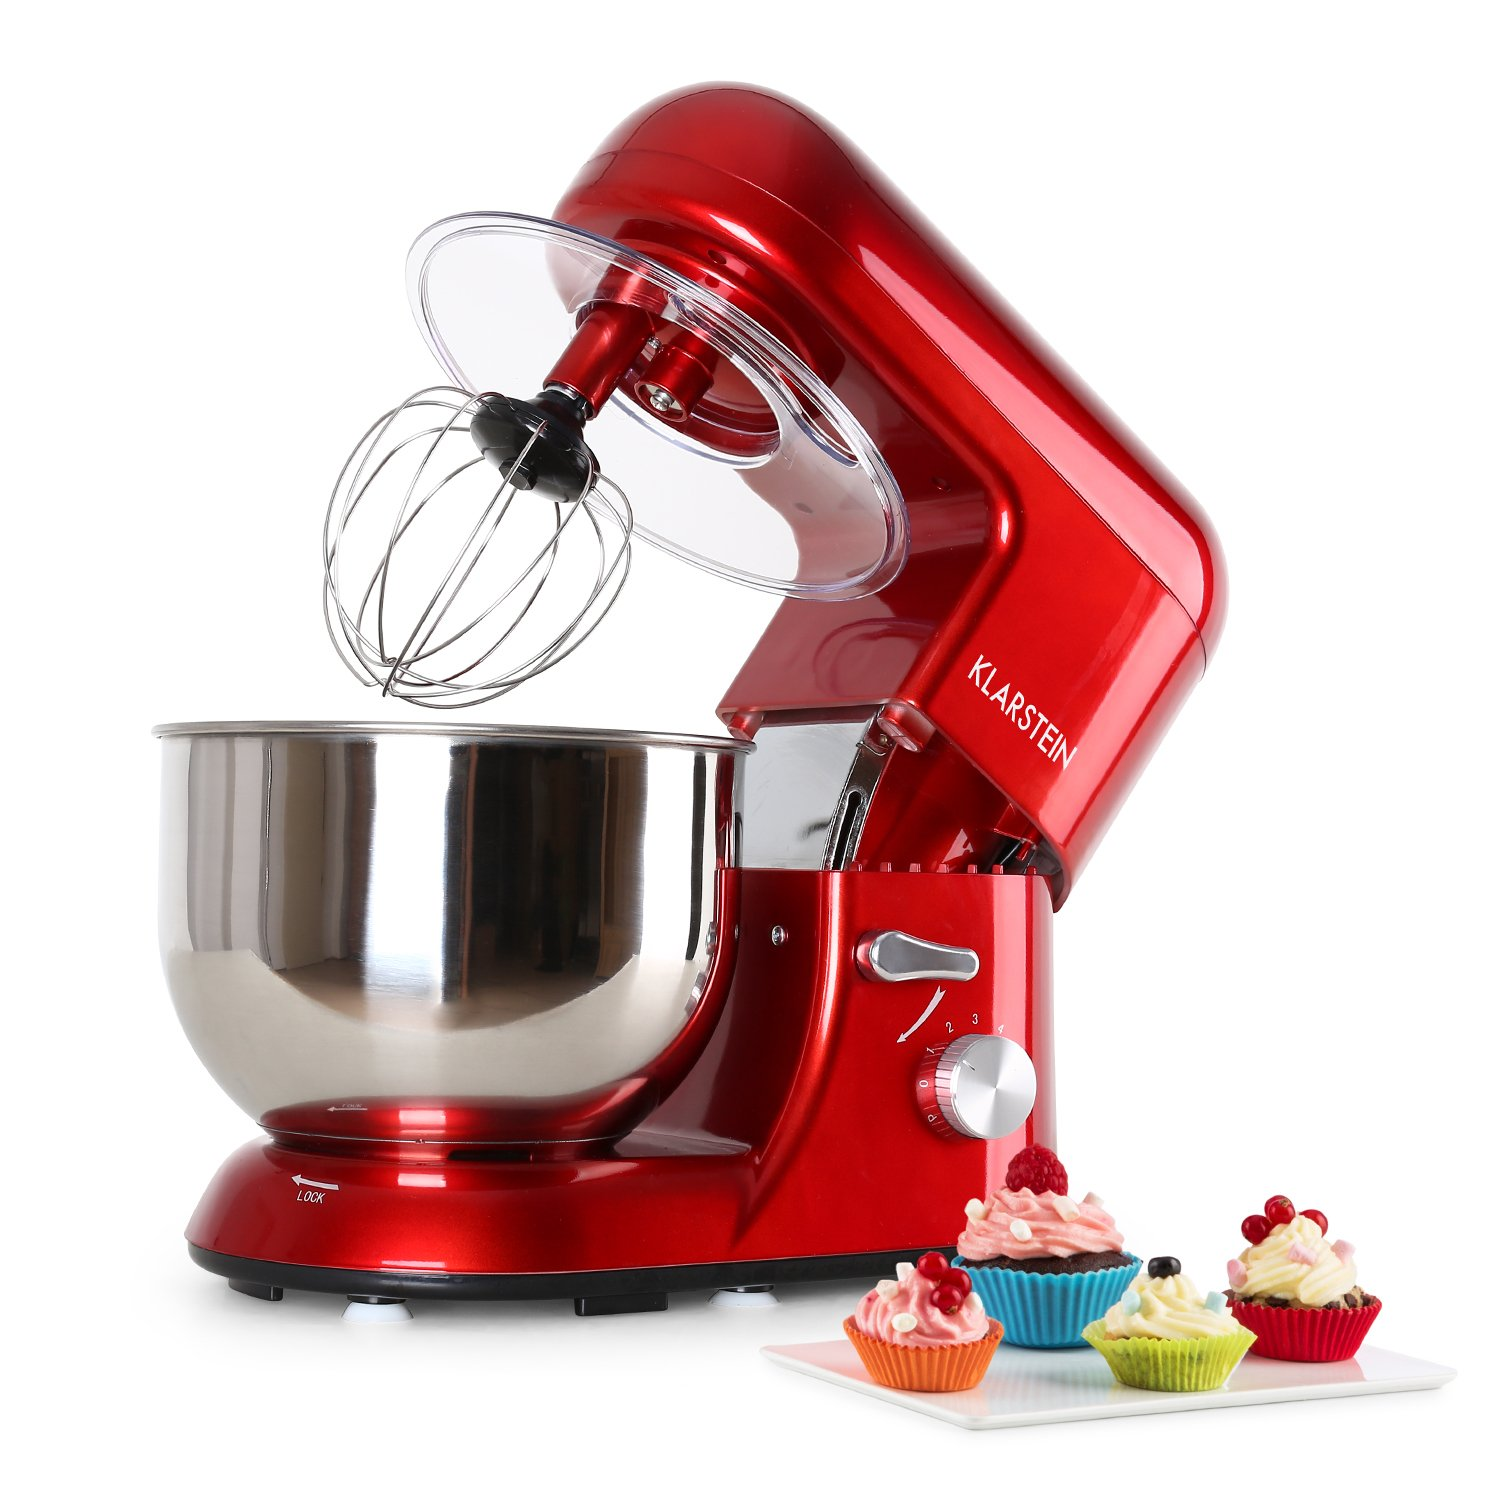 KLARSTEIN Bella Rossa • Tilt-Head Stand Mixer • Dough Hook, Flat Beater, Wire Whip • 650 W • 5.5 qt Stainless Steel Bowl • Planetary Mixing • 6 Speeds • red